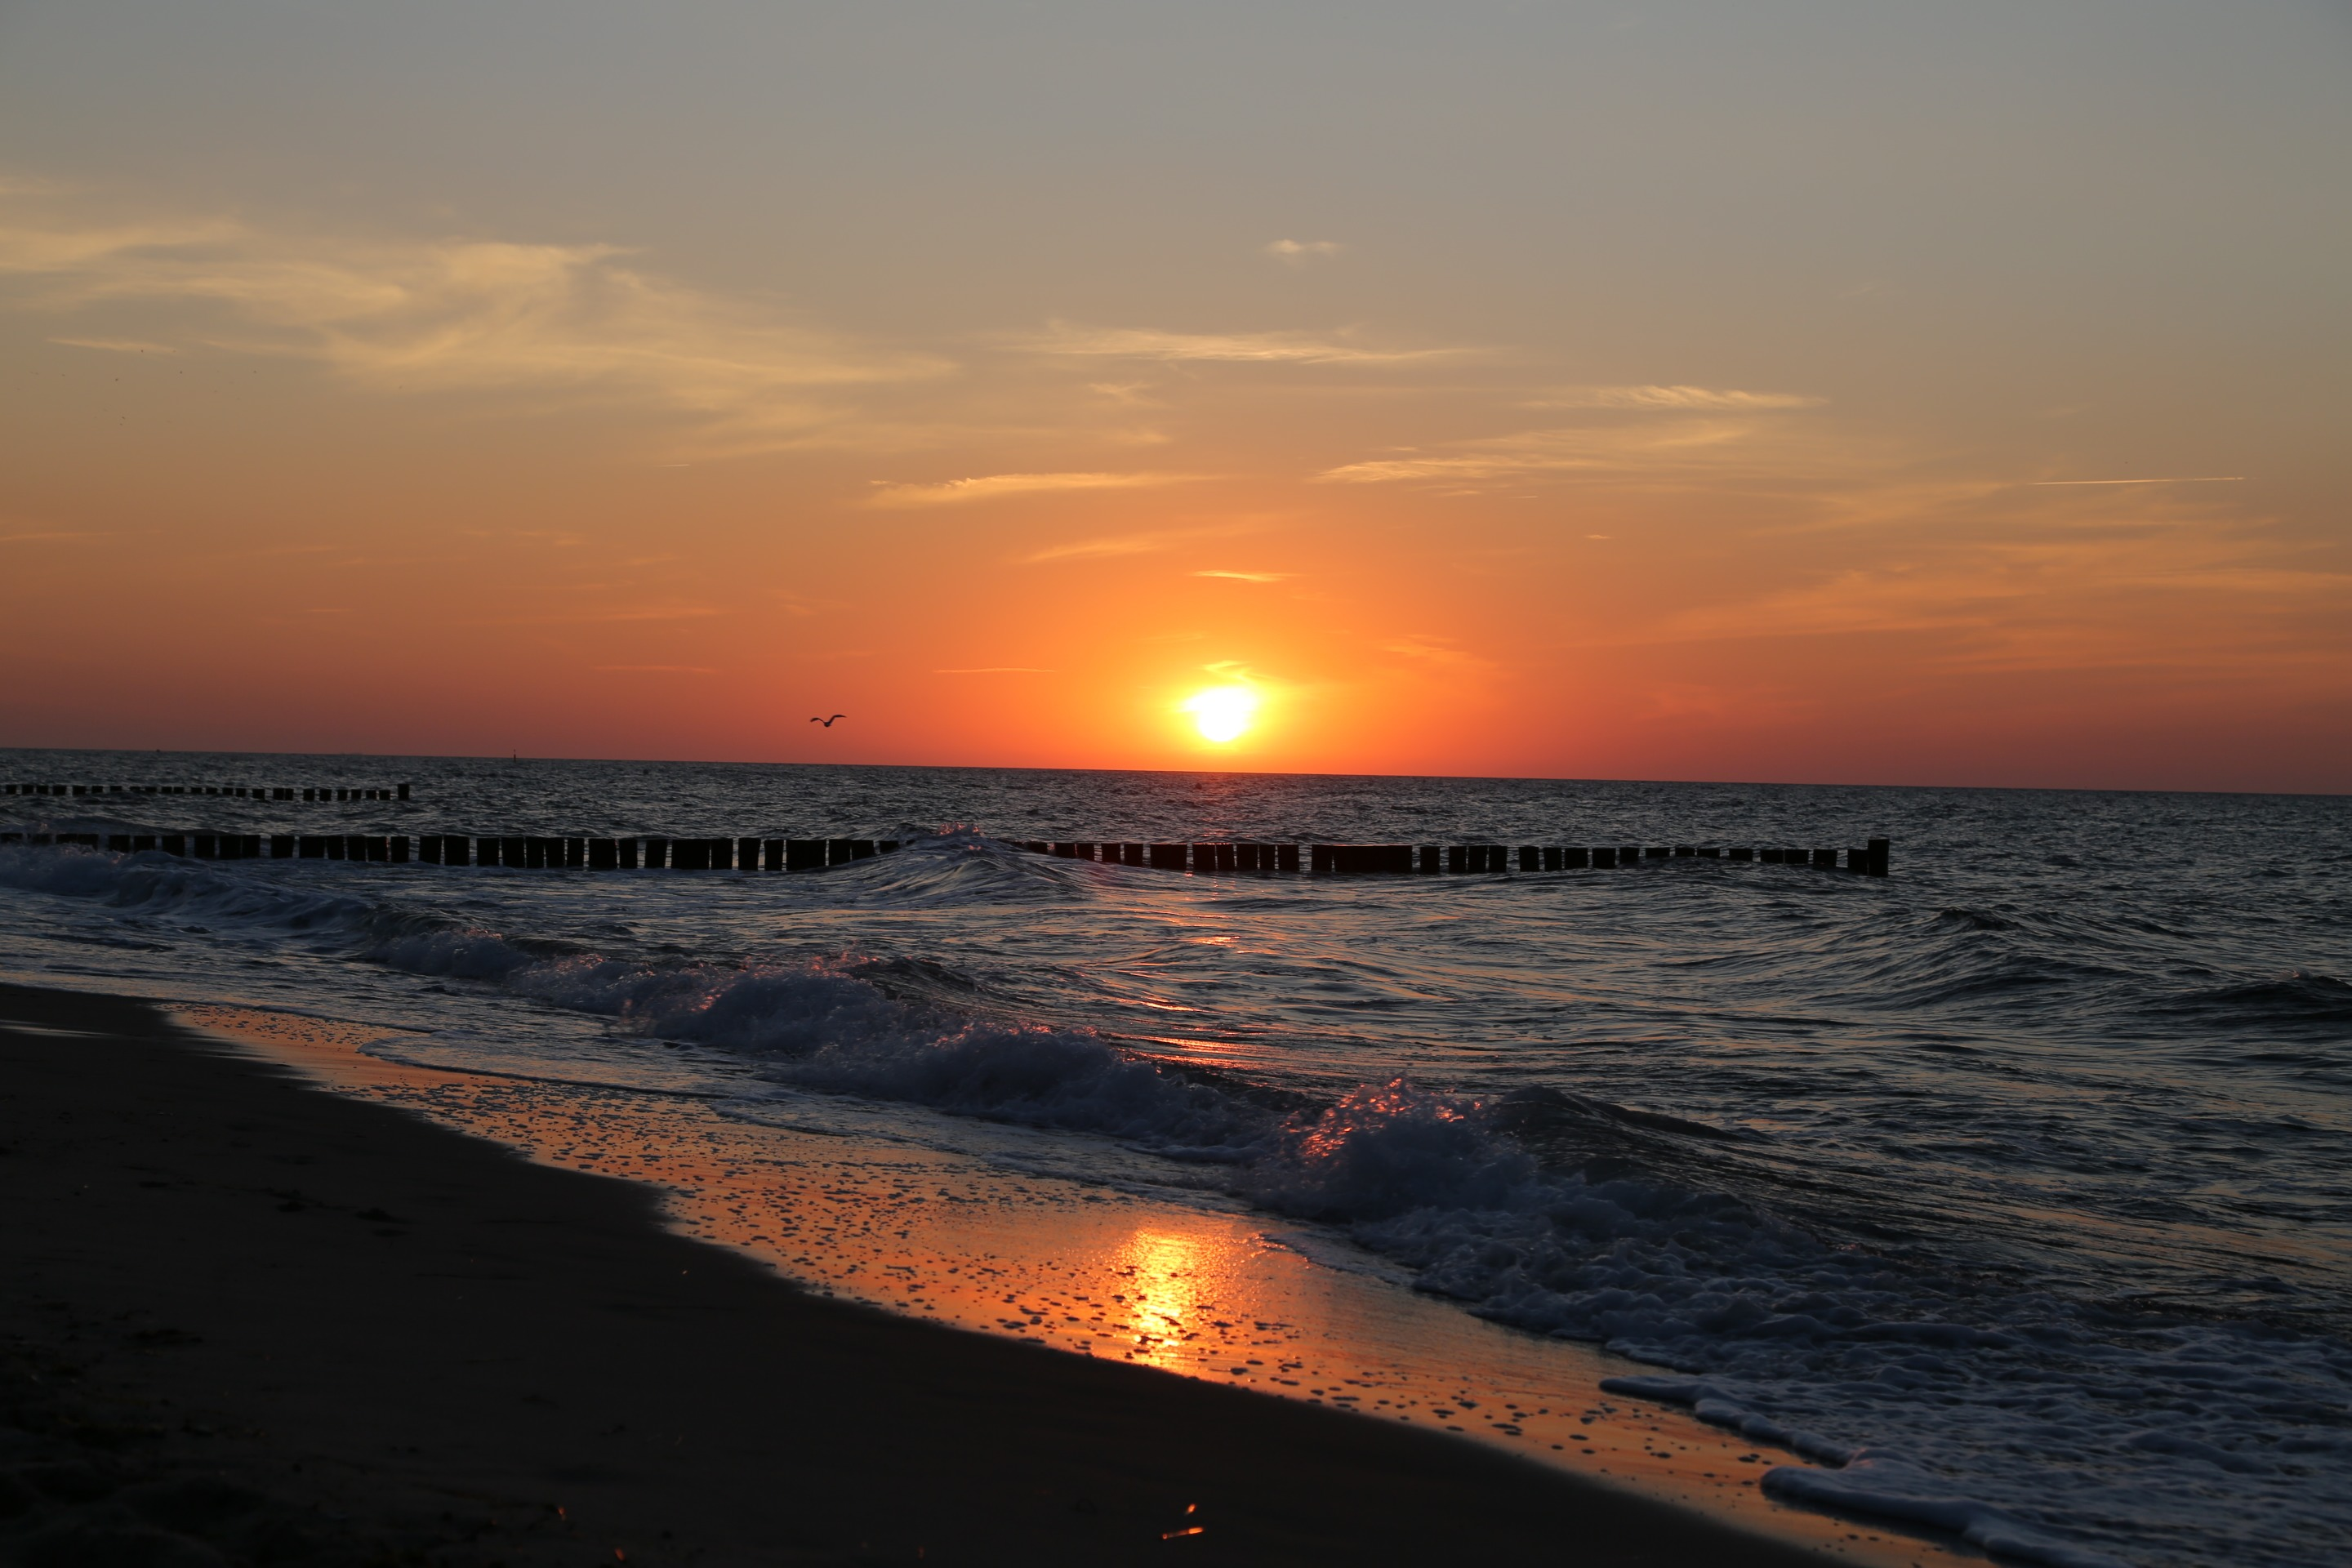 Baltic Sea Sunset (Oostzee) – Flickr